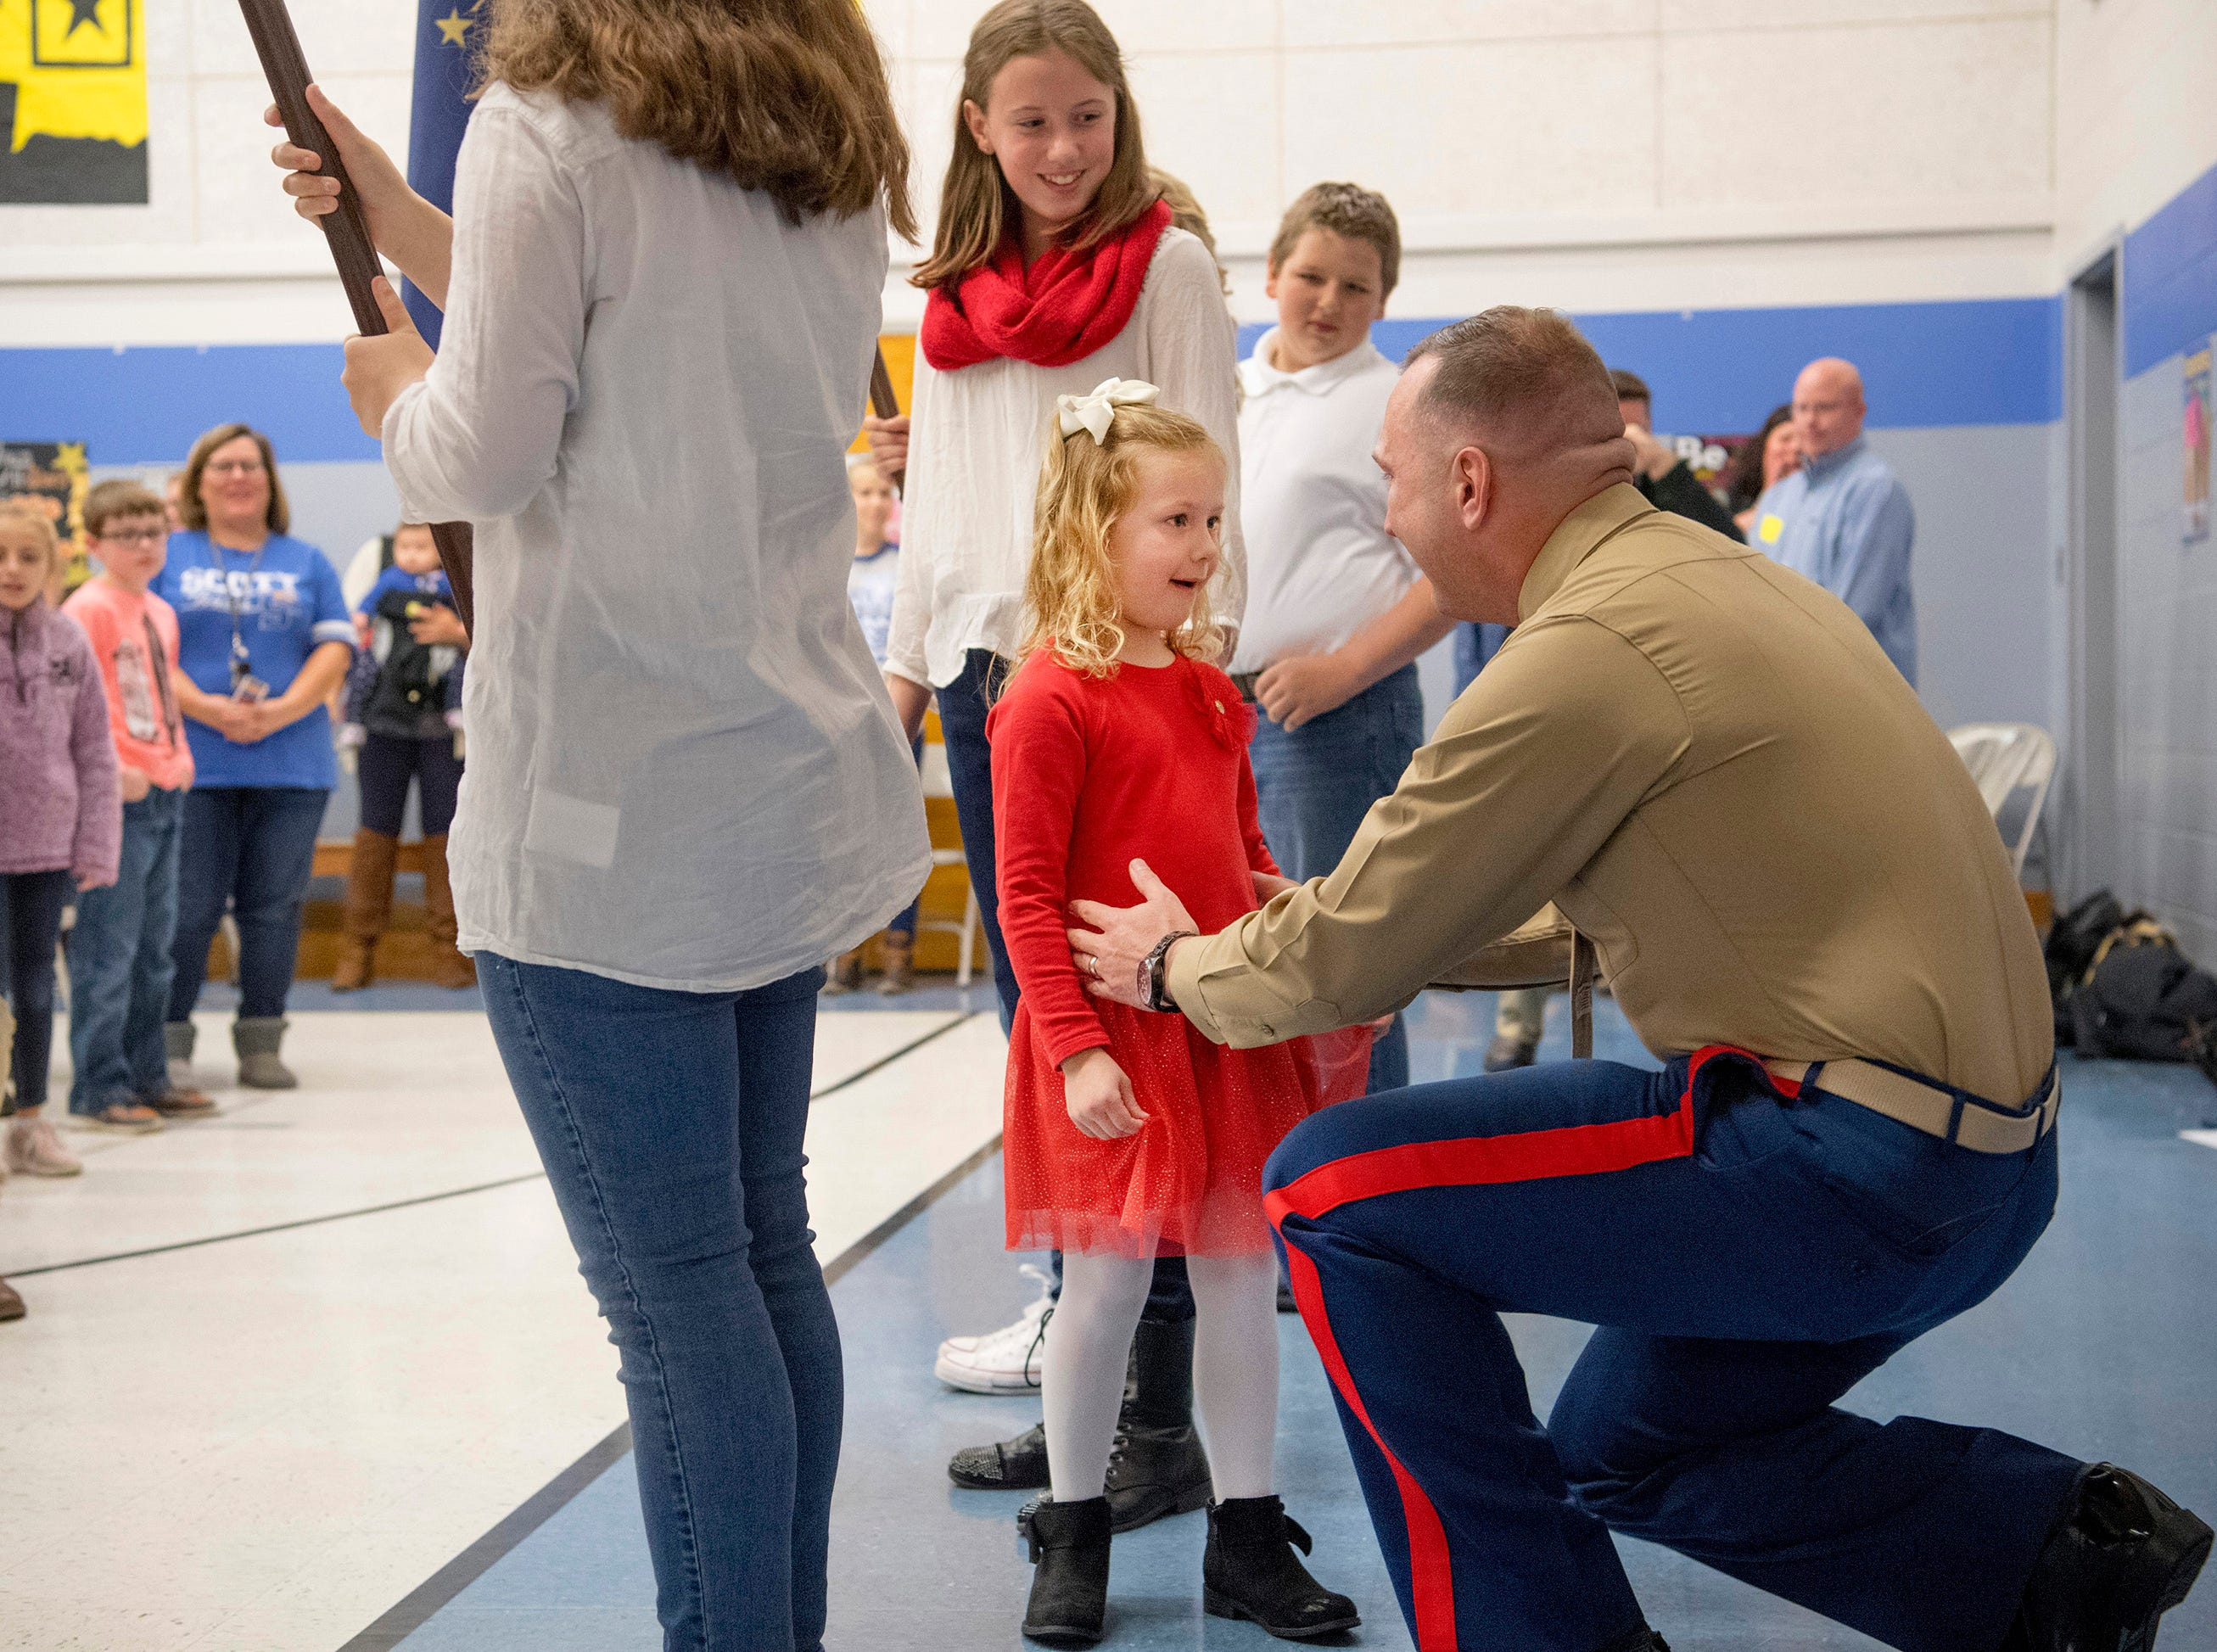 Scott Elementary School kindergartner Eliana Marzec, 5, center, is surprised to find her father, Marine Corps Capt. Ryan Marzec, standing behind her during the Veterans Day program Friday morning, Nov. 9, 2018. Captain Marzec returned from a tour in Afghanistan and surprised the eldest of his three daughters.